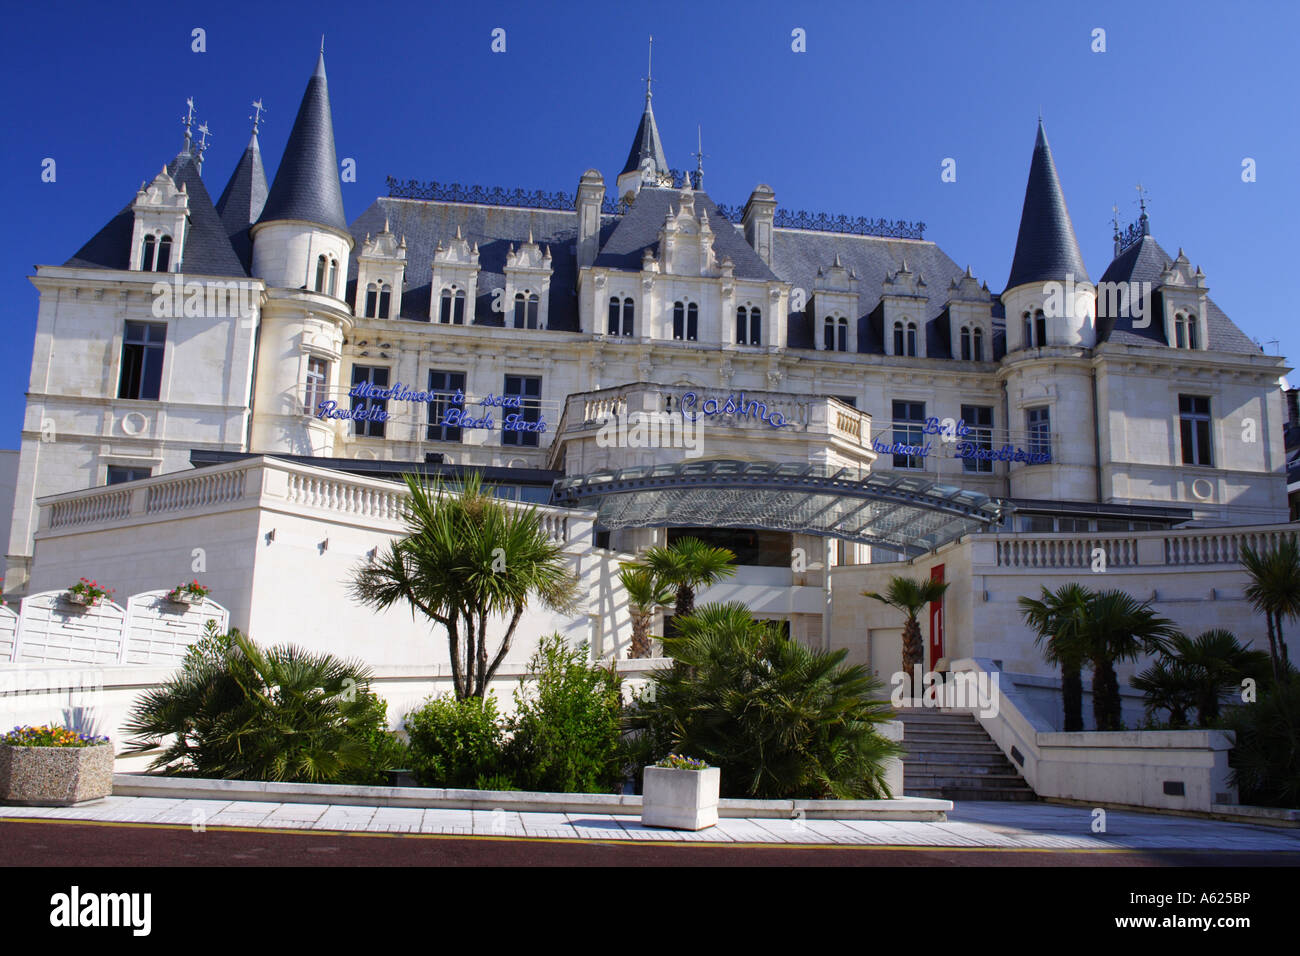 Casino, Arcachon, The Dordogne, France Stock Photo